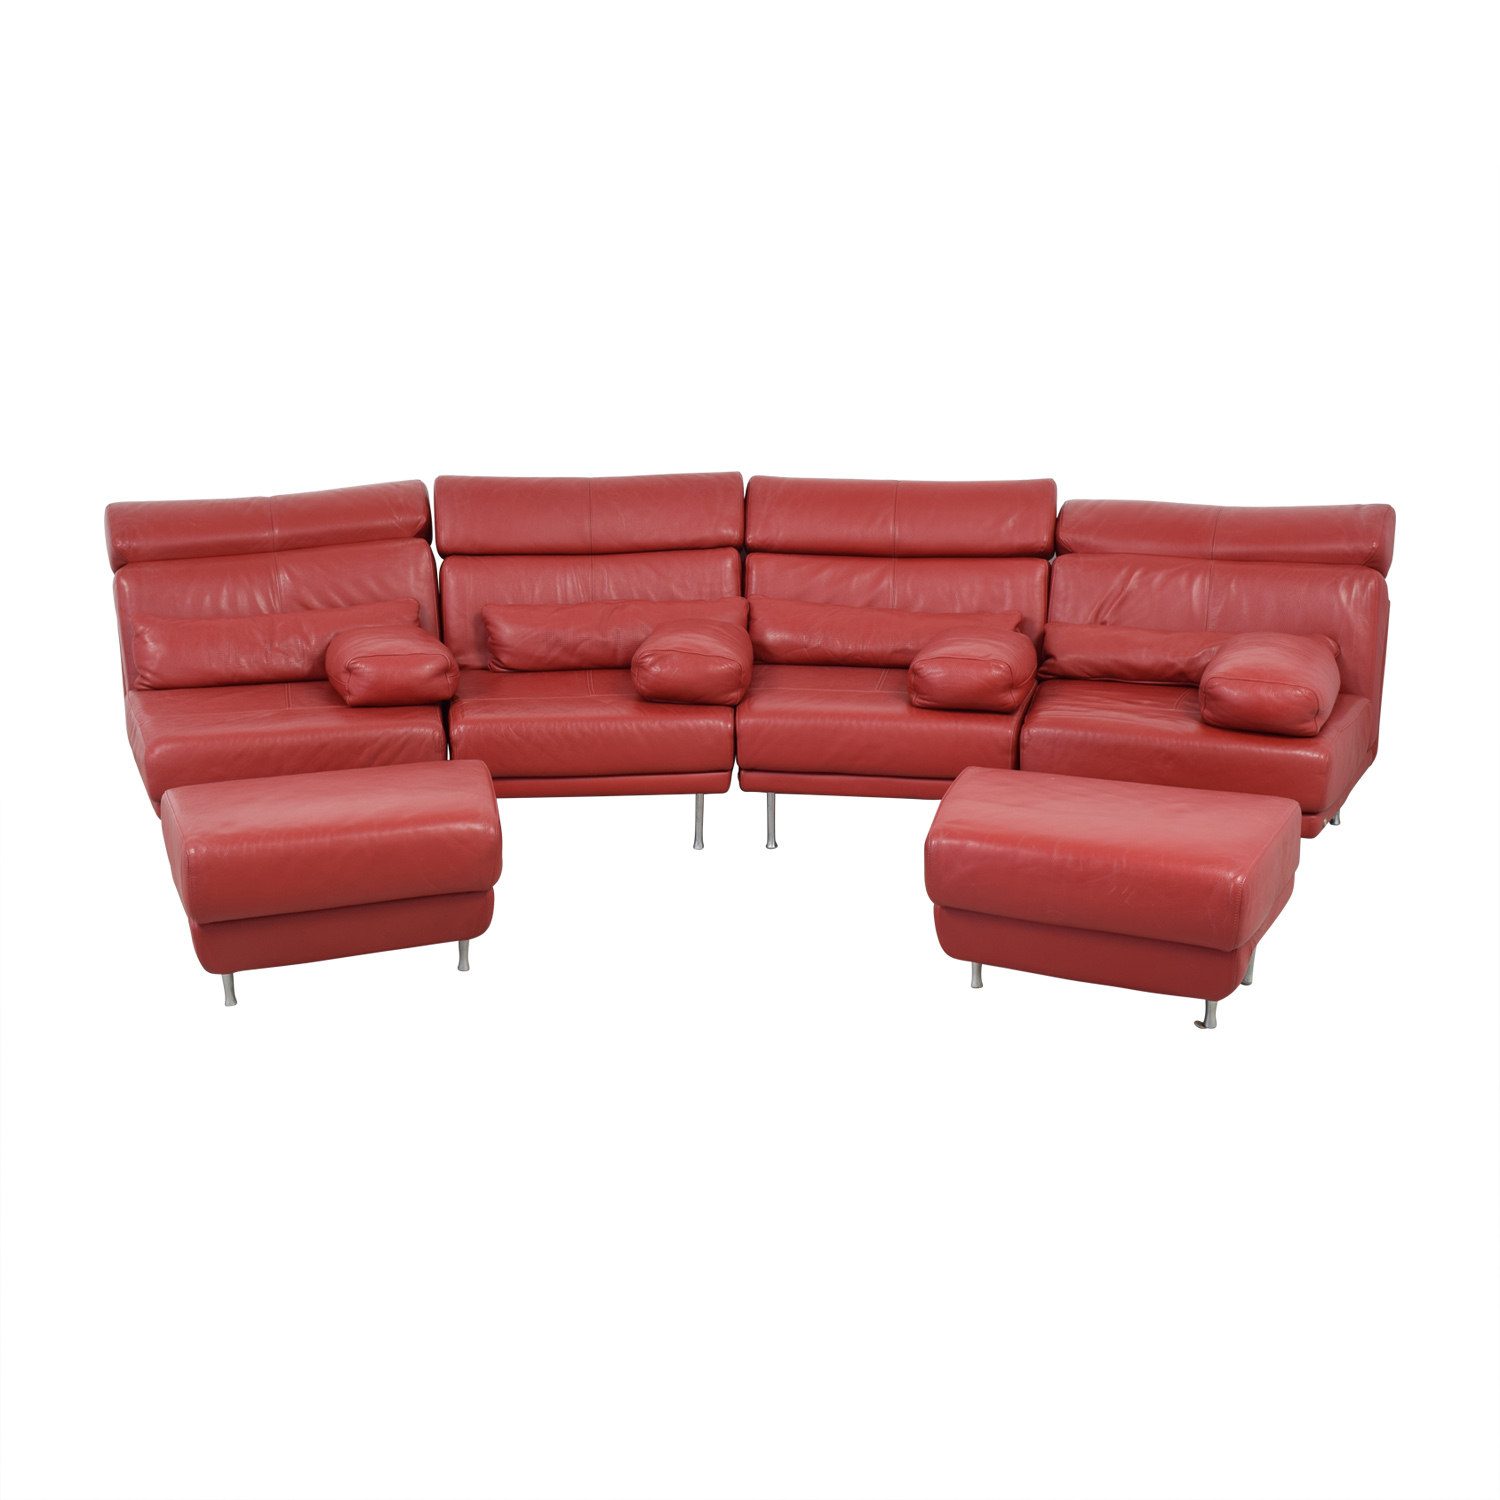 Natuzzi Natuzzi Red Leather Sectional with Two Ottomans price